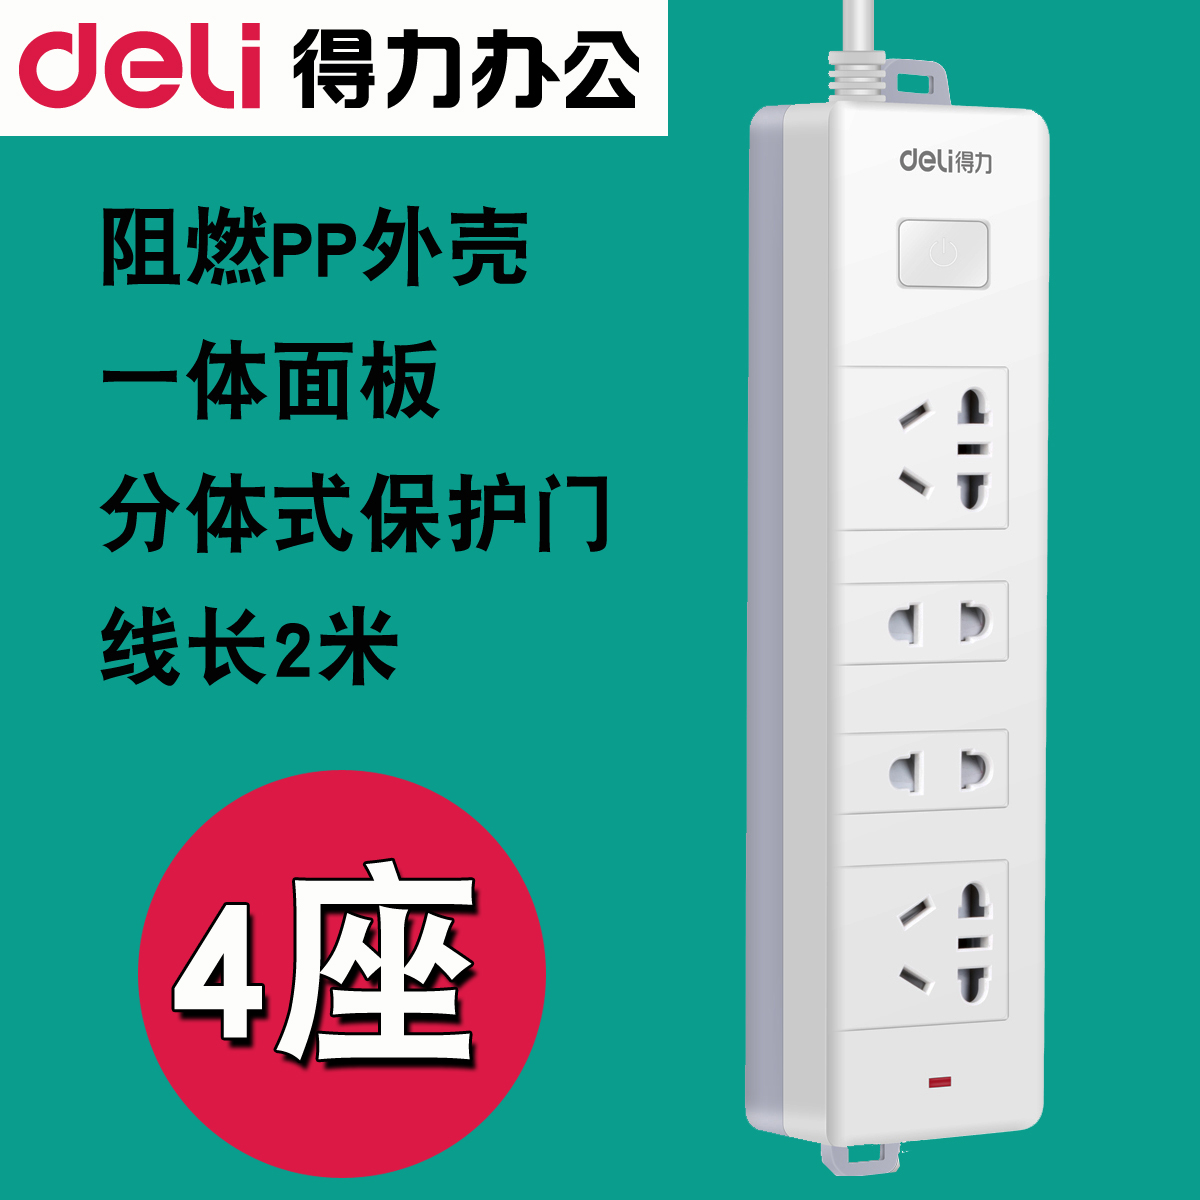 Rj45 Receptacle Wiring Diagram Not Lossing Plug Uk An Outlet Panel Onan P218g Socket Connector